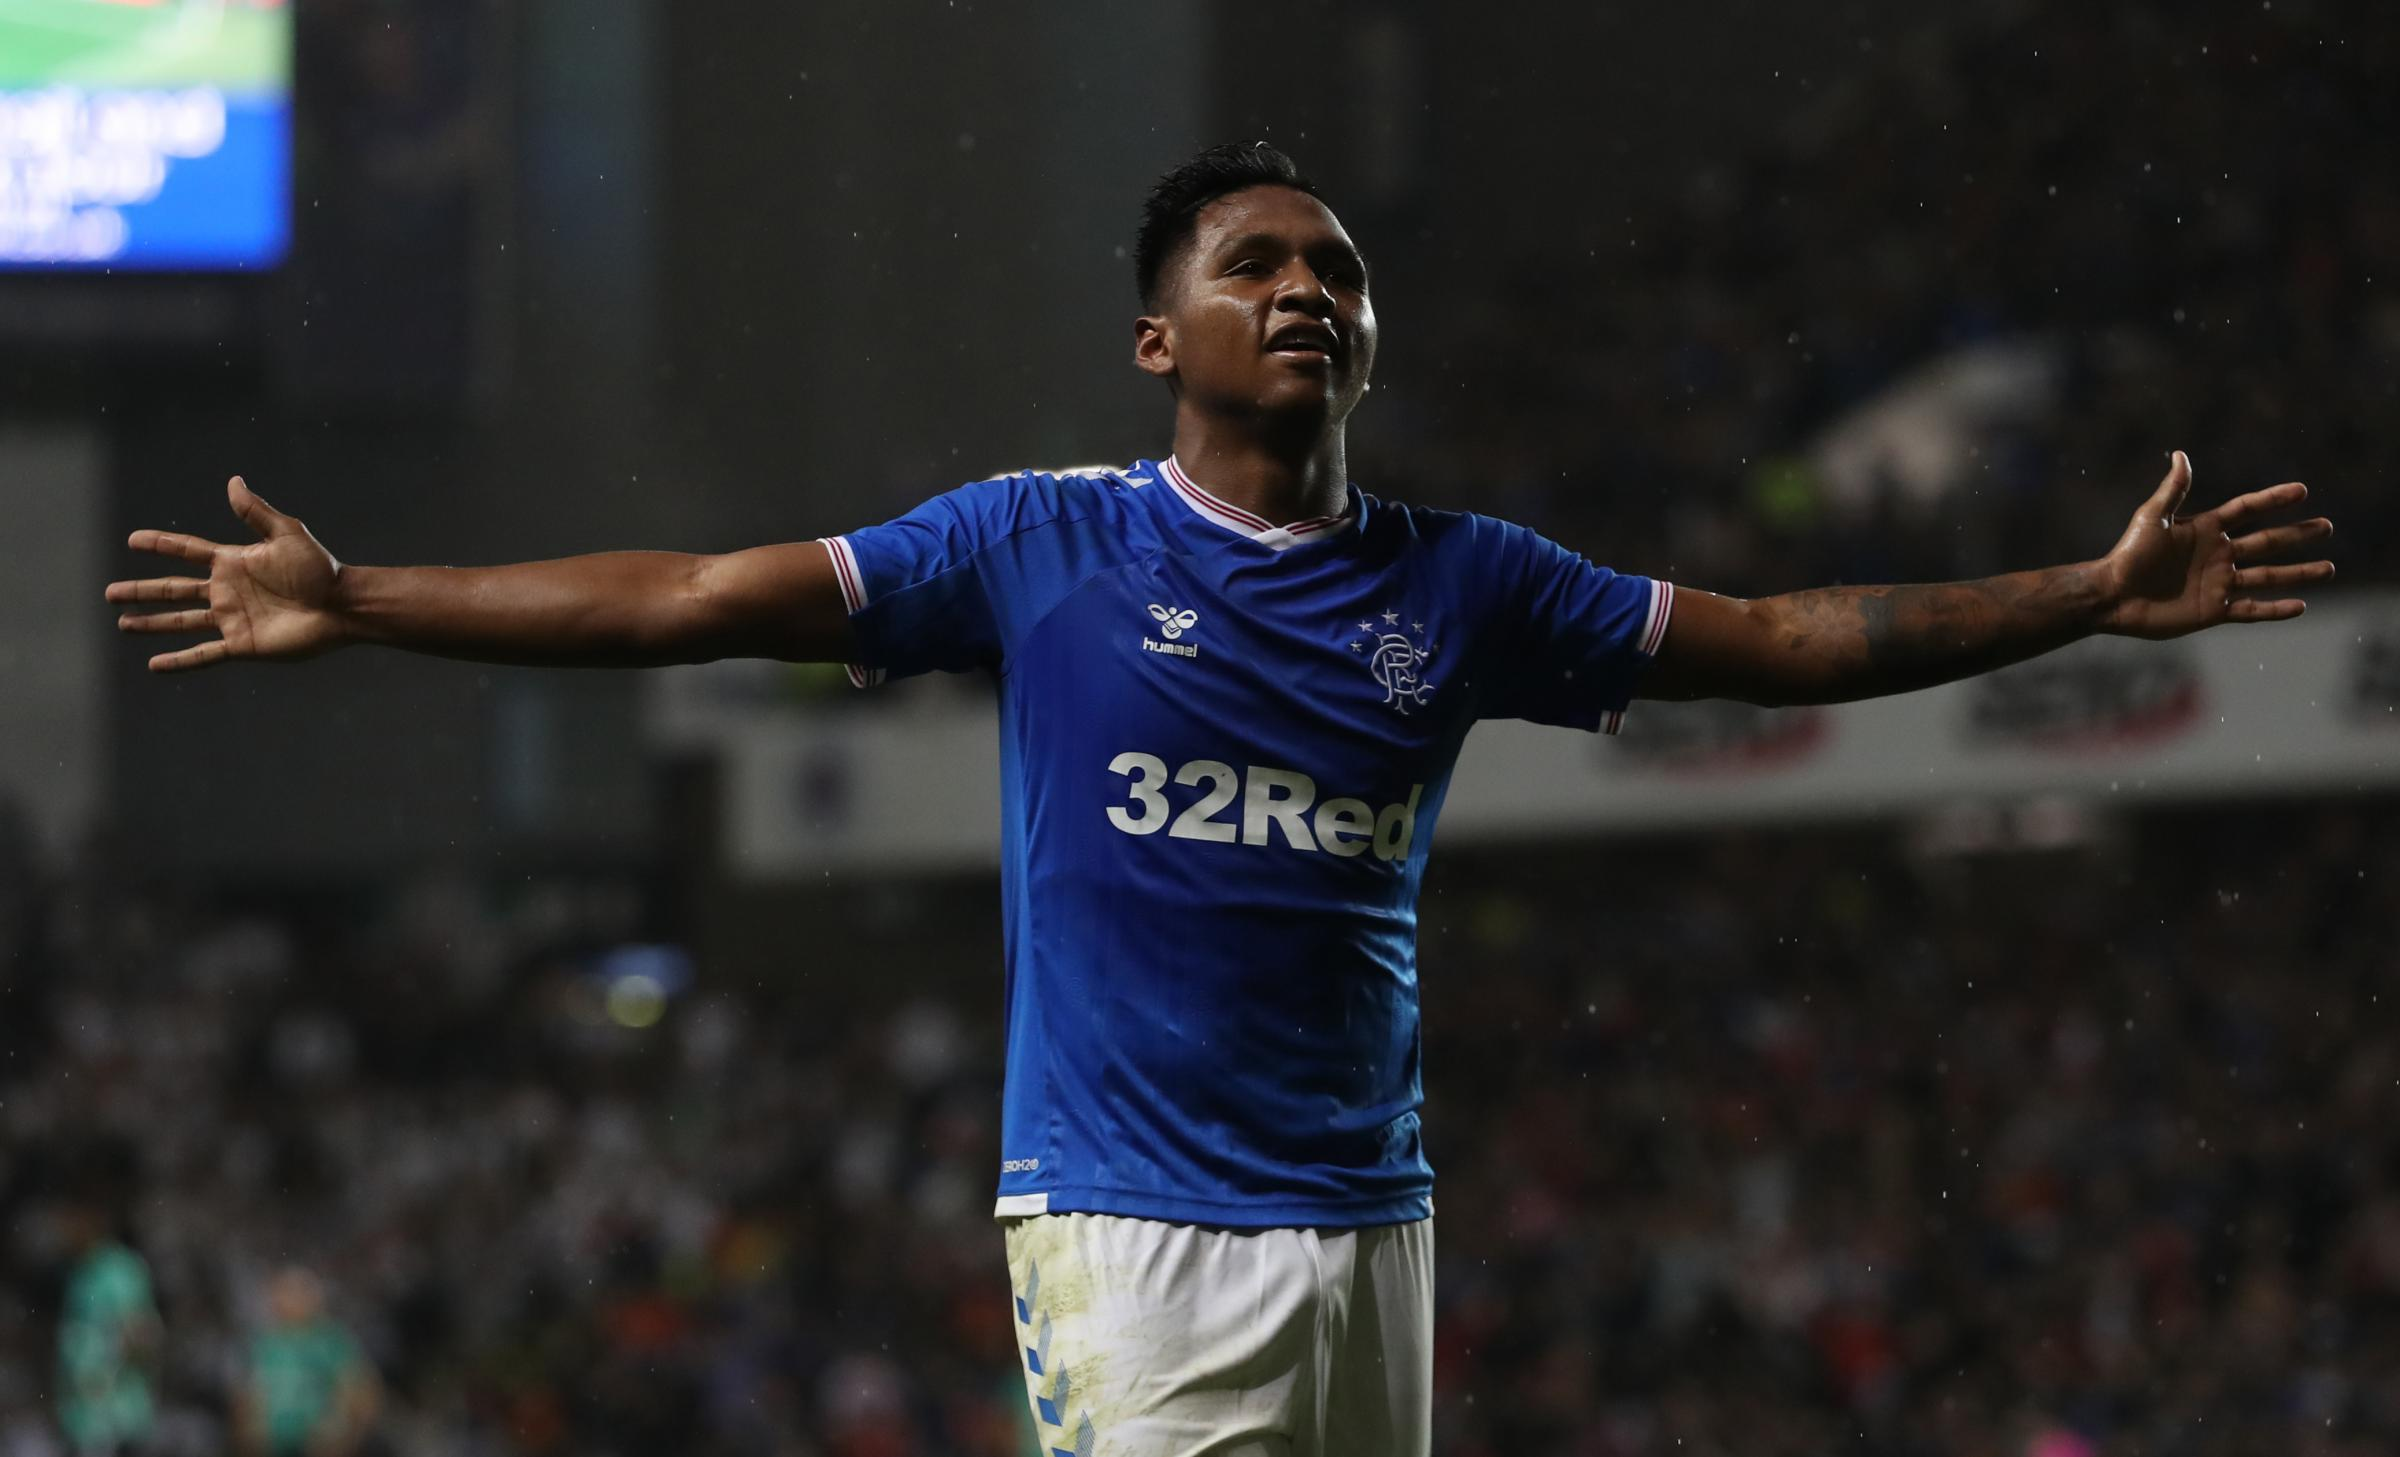 Rangers duo Steven Gerrard and Alfredo Morelos win monthly awards for first time